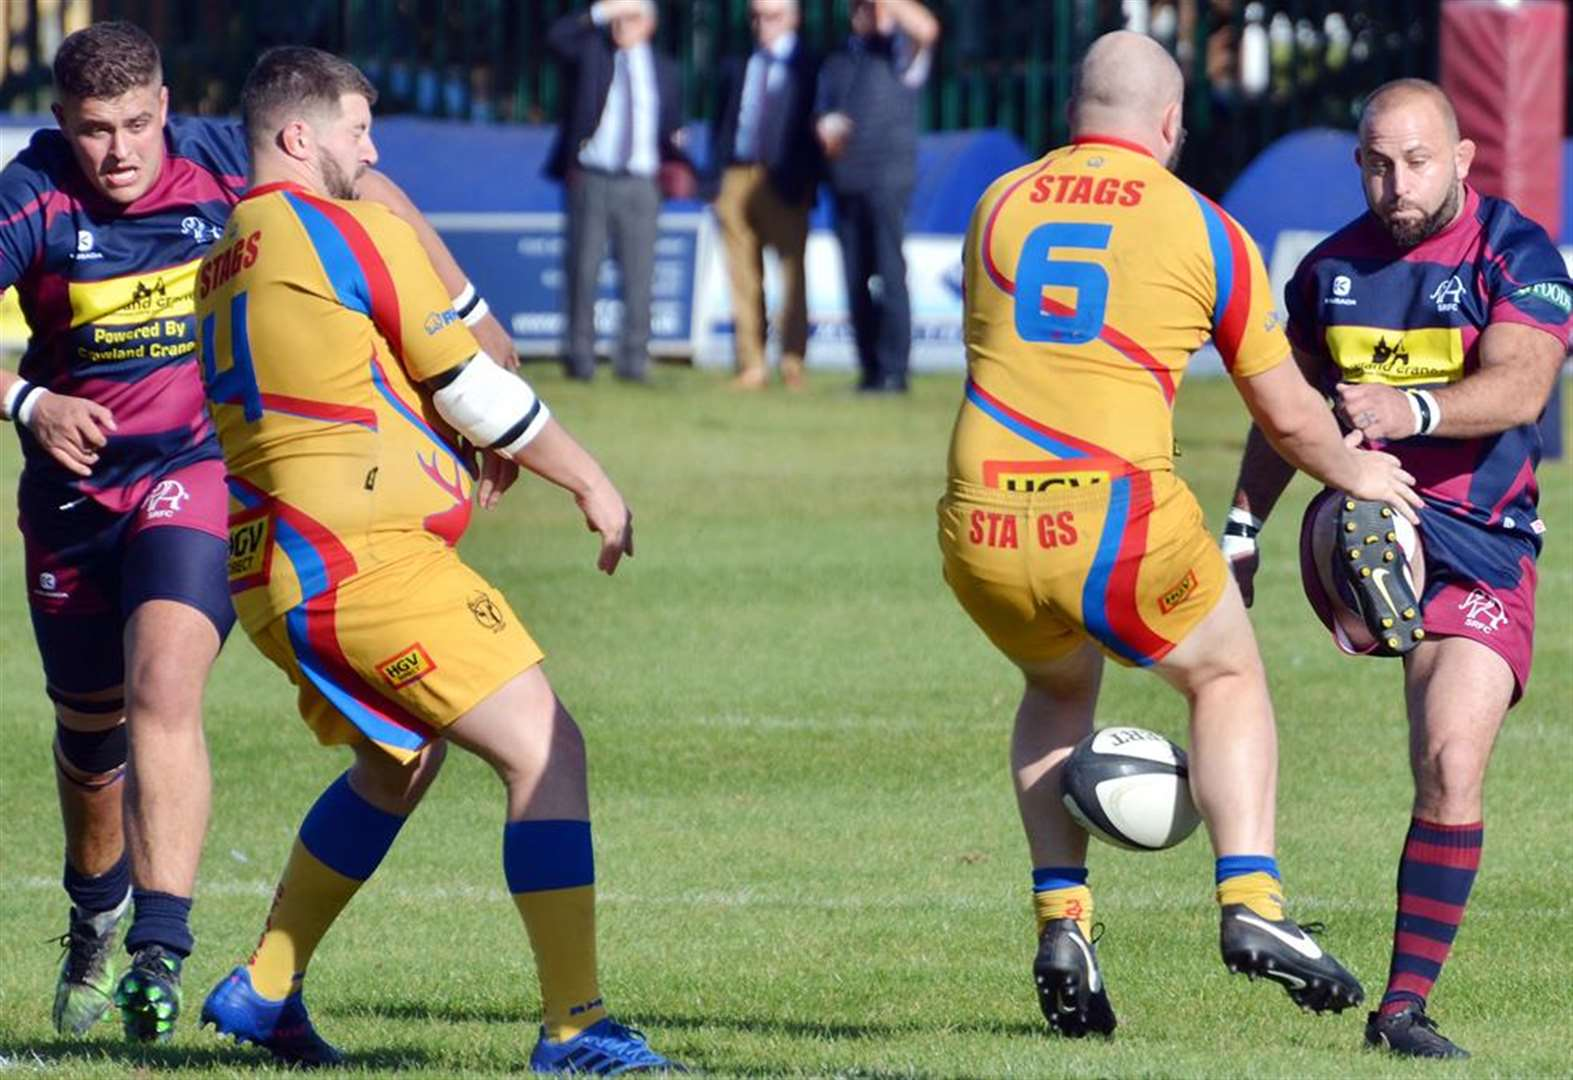 RUGBY UNION: Another away defeat for Spalding